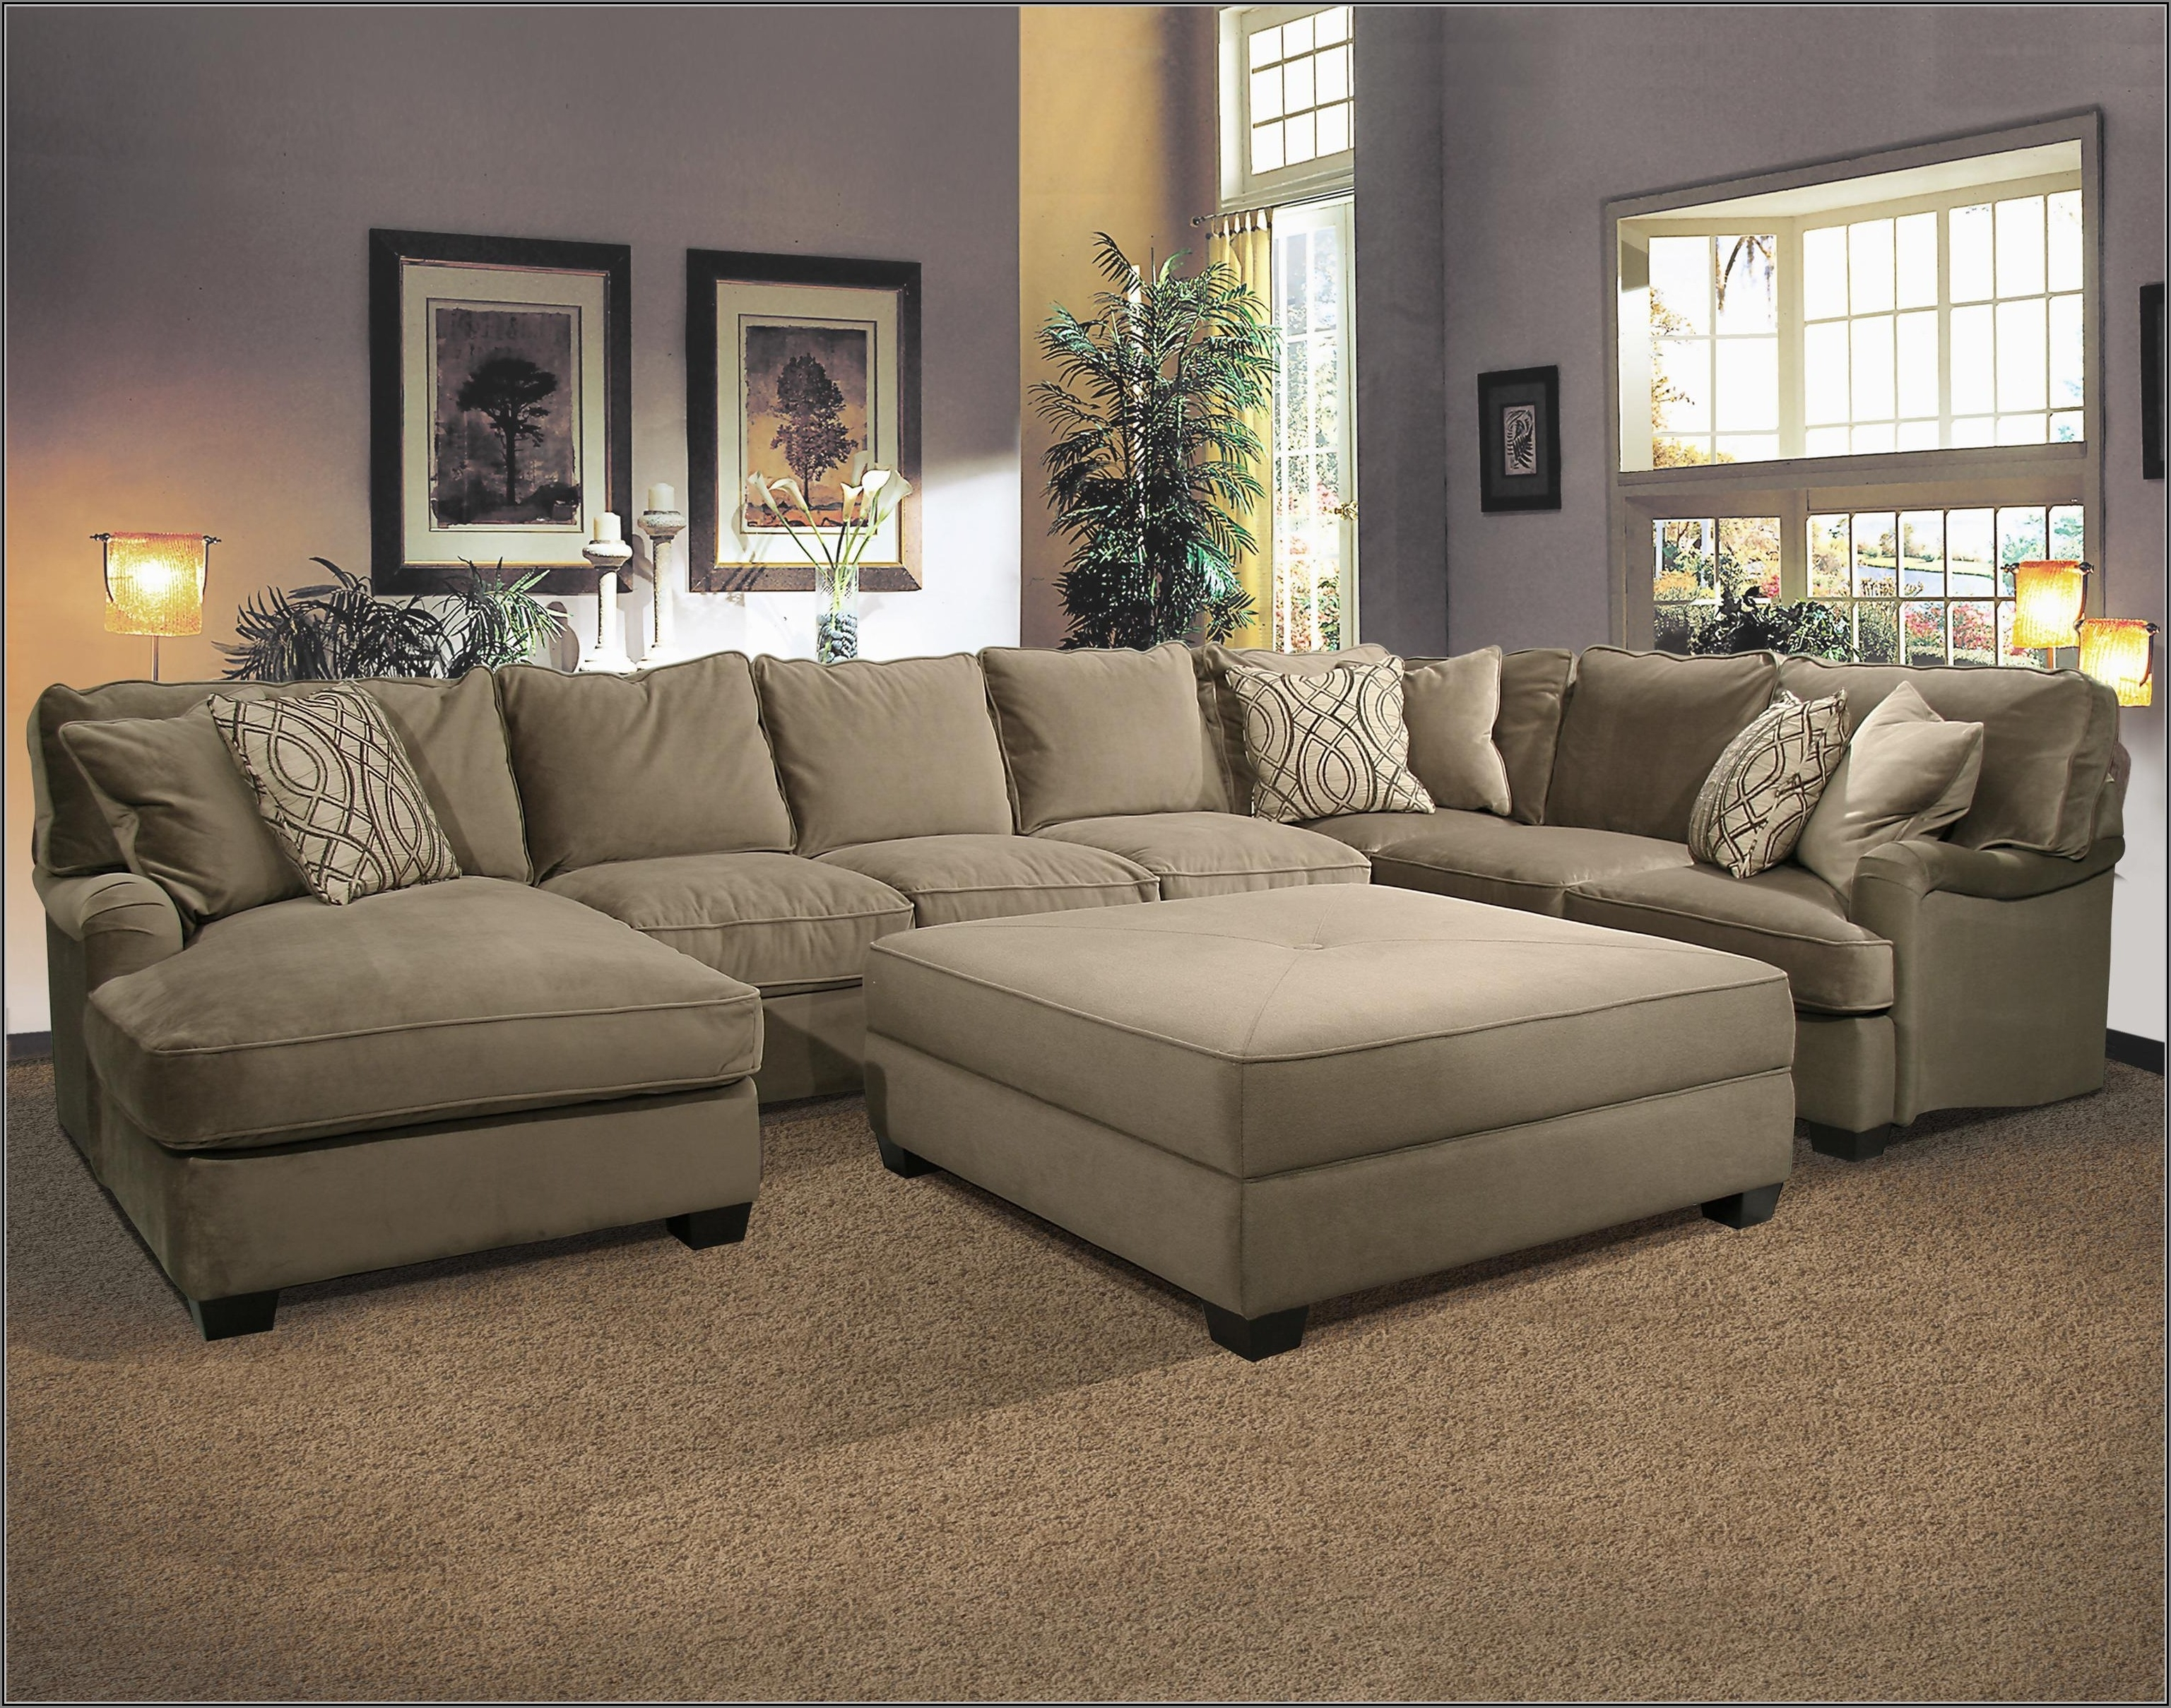 Couches With Large Ottoman Inside Latest Sectional Sofa With Large Ottoman Hotelsbacau Com Intended For (View 2 of 20)